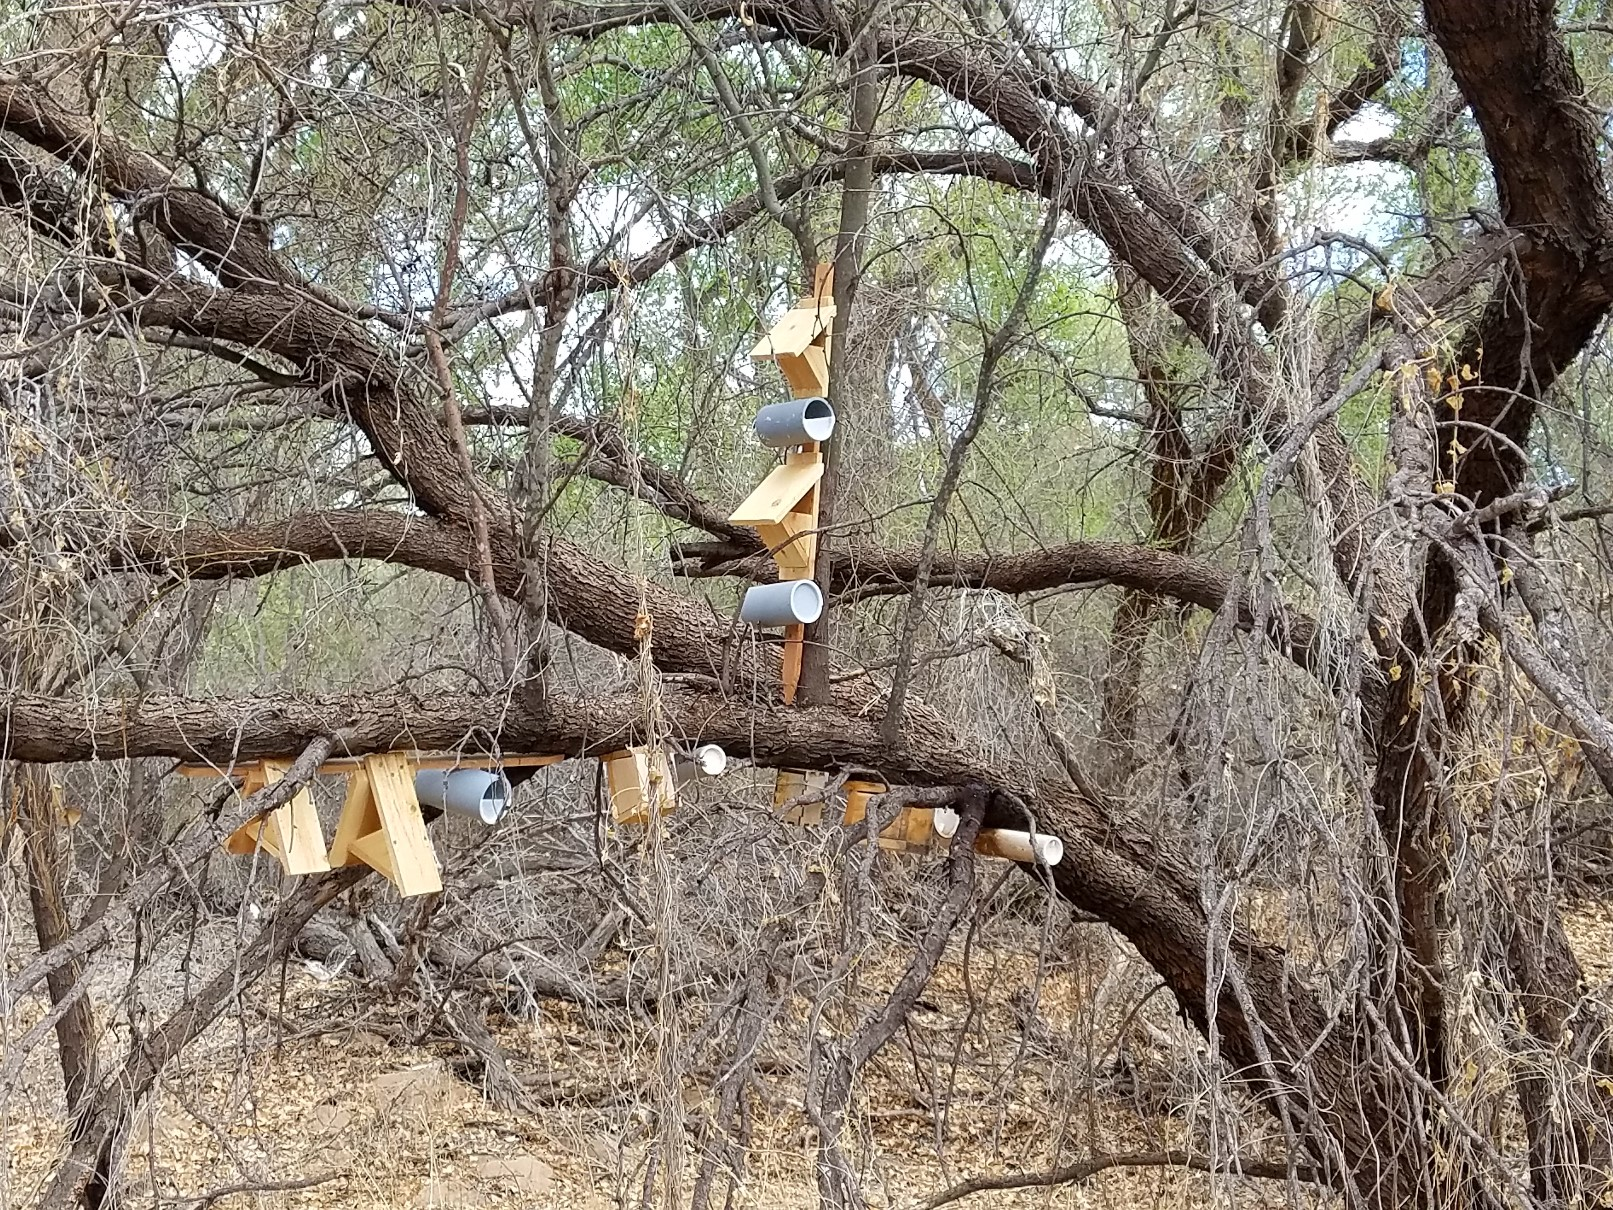 Wooden nest boxes are installed on the branches of a mature mesquite tree.